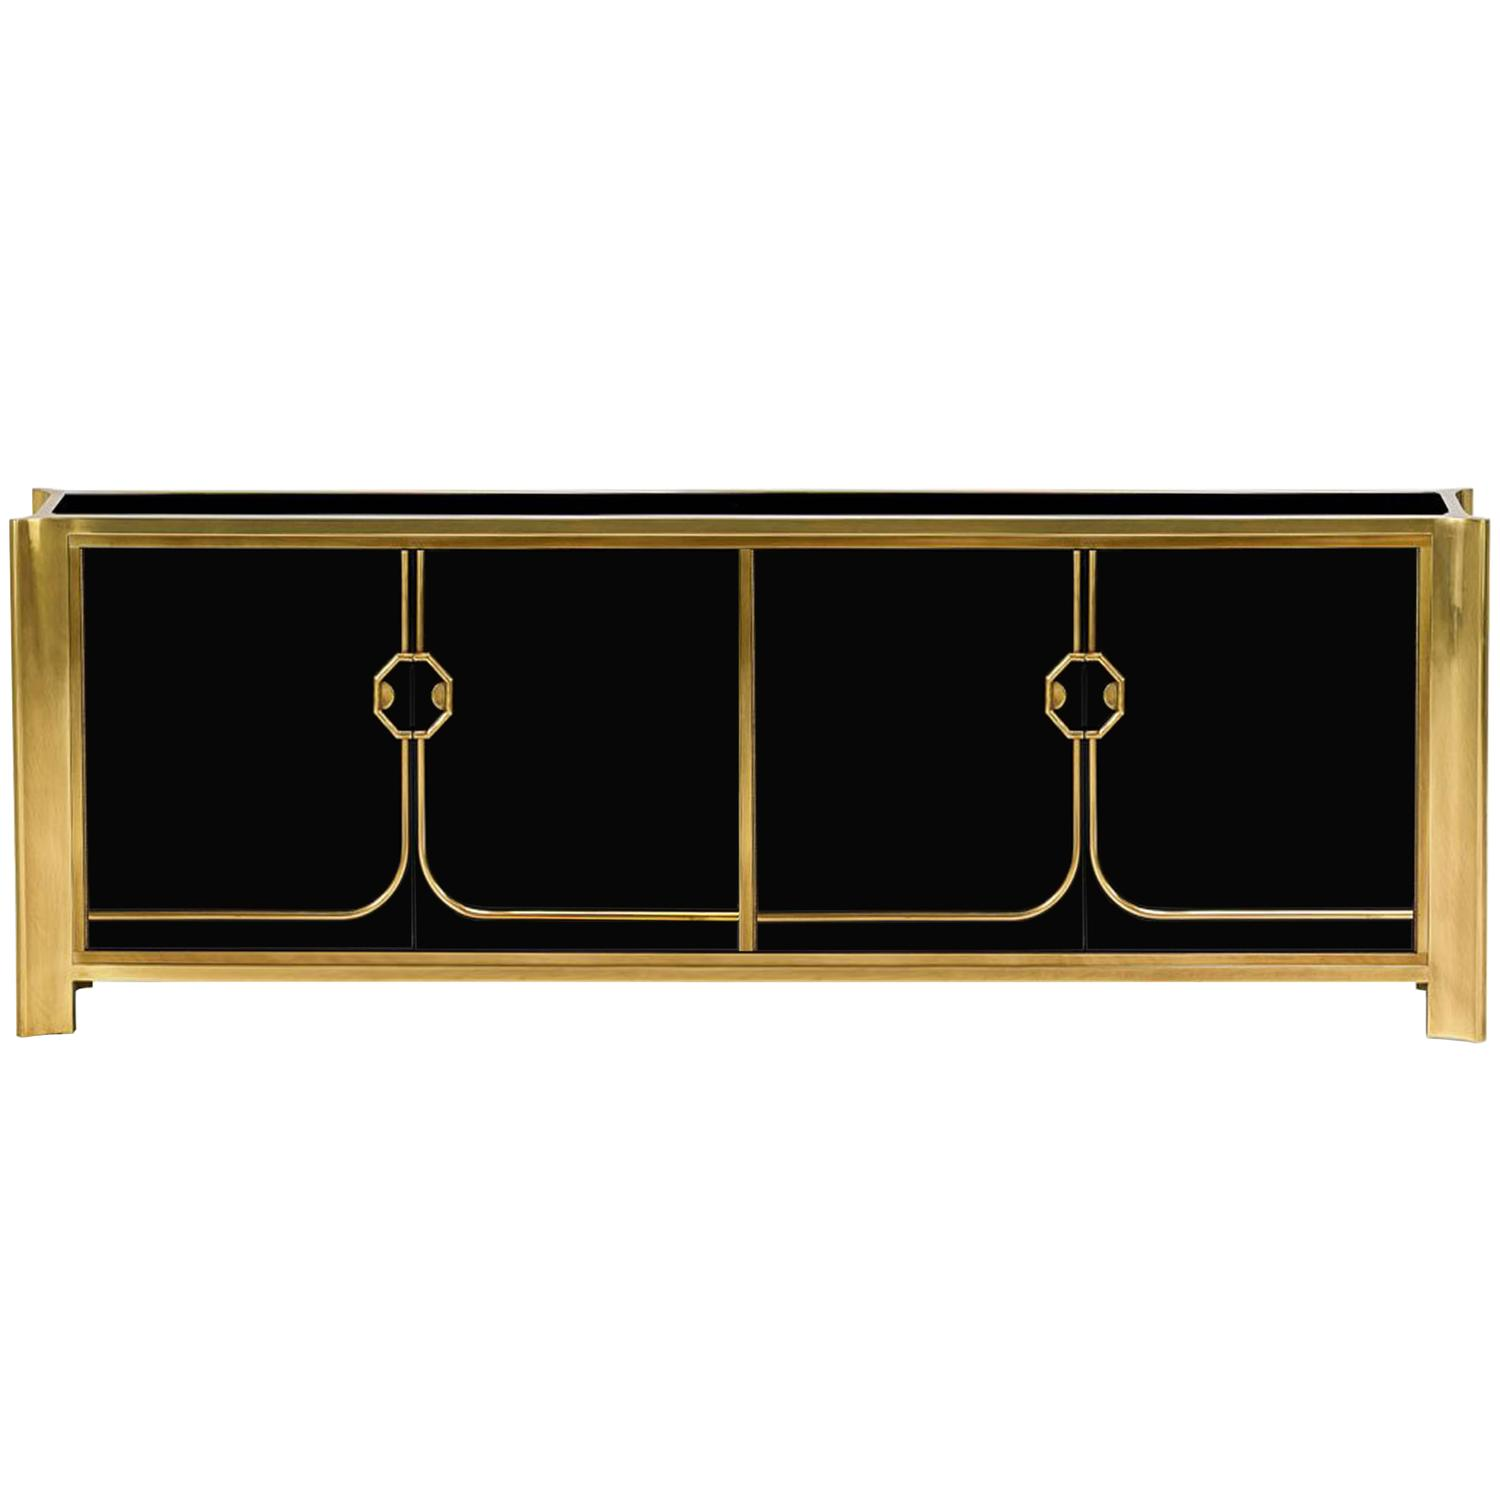 Black Lacquered Credenza by Roche Bobois For Sale at 1stdibs